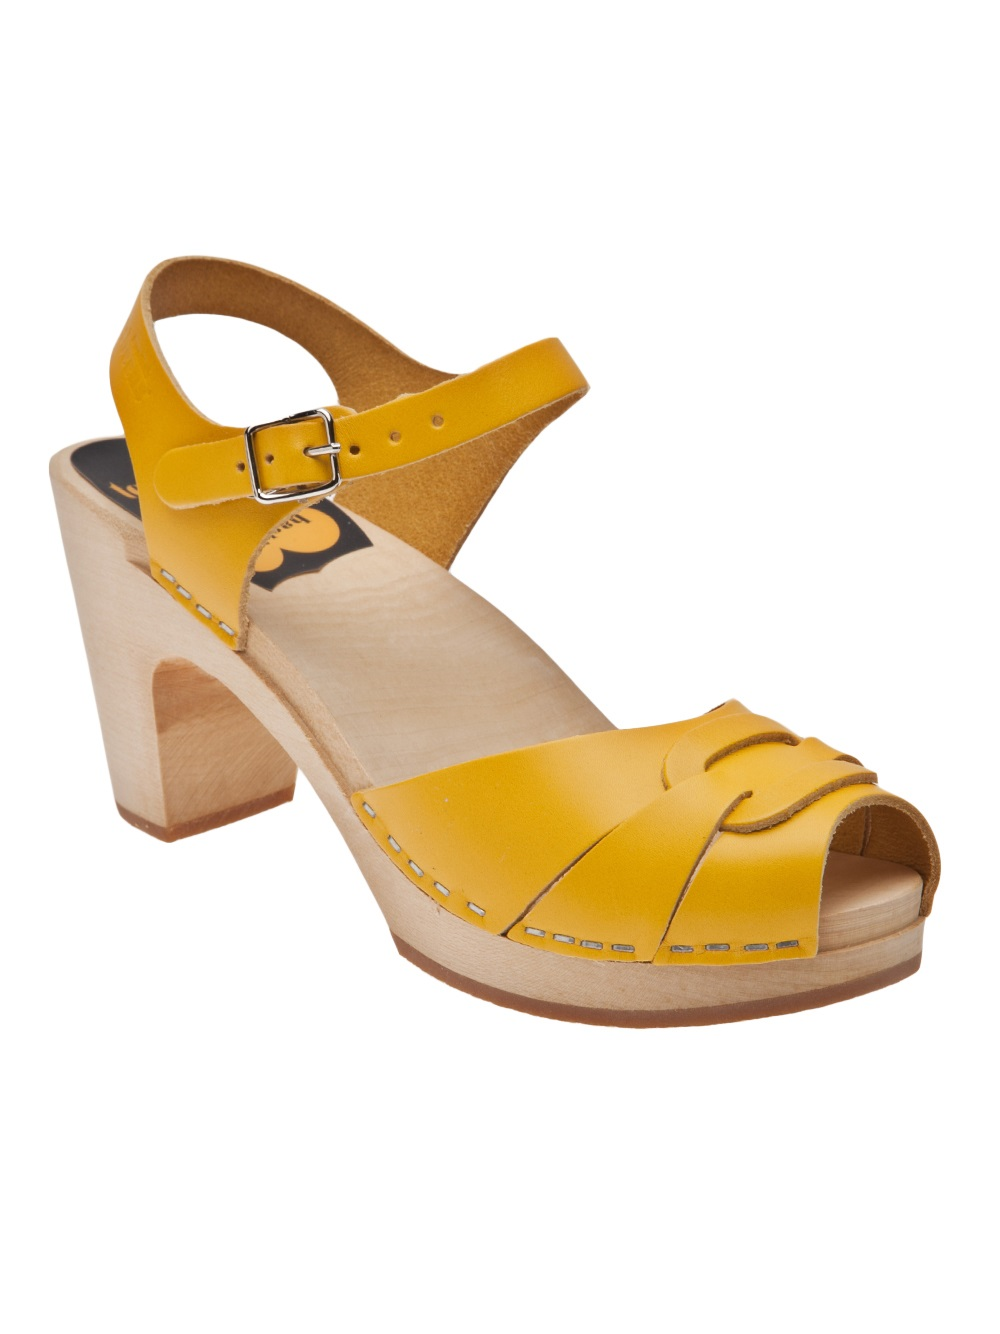 8e0a0151f27c Lyst - Swedish Hasbeens Peep Toe Super High Sandal in Yellow